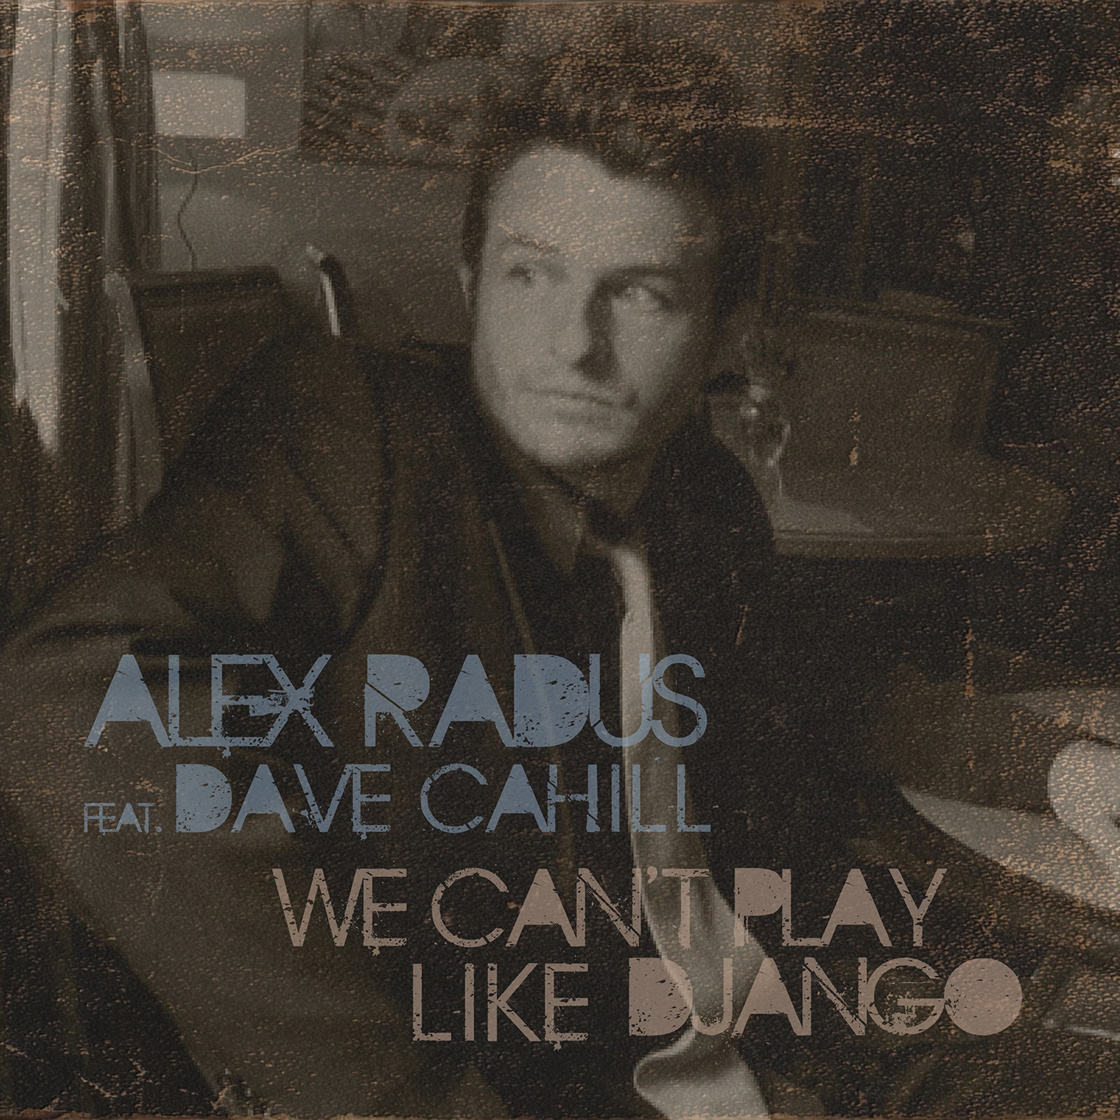 "Alex Radus feat. Dave Cahill ""We Can't Play Like Django"""